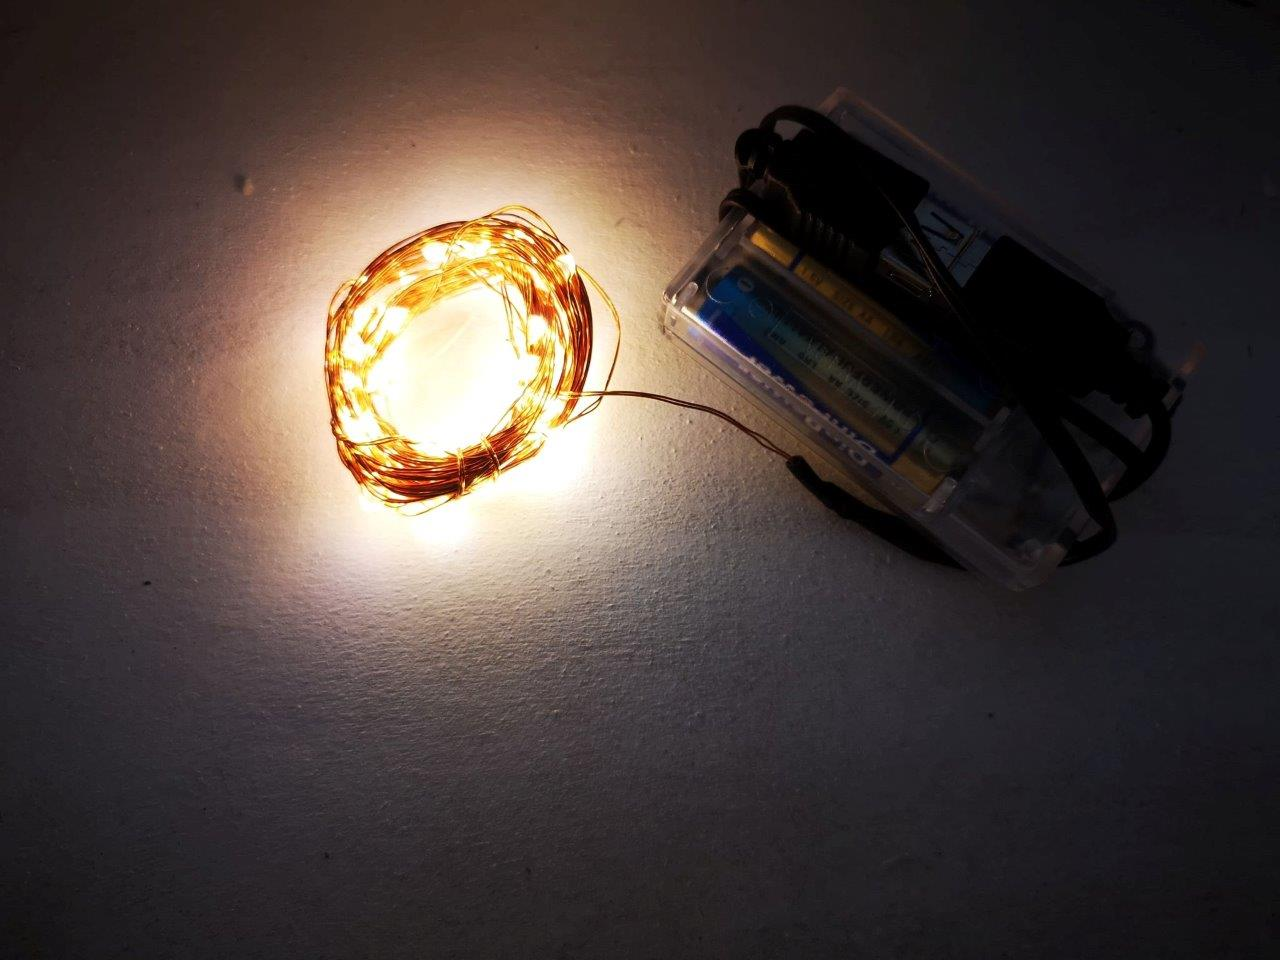 5m Seed Lights Warm White Copper Wire 5m-Seed-Lights-Warm-White-Copper-Wire